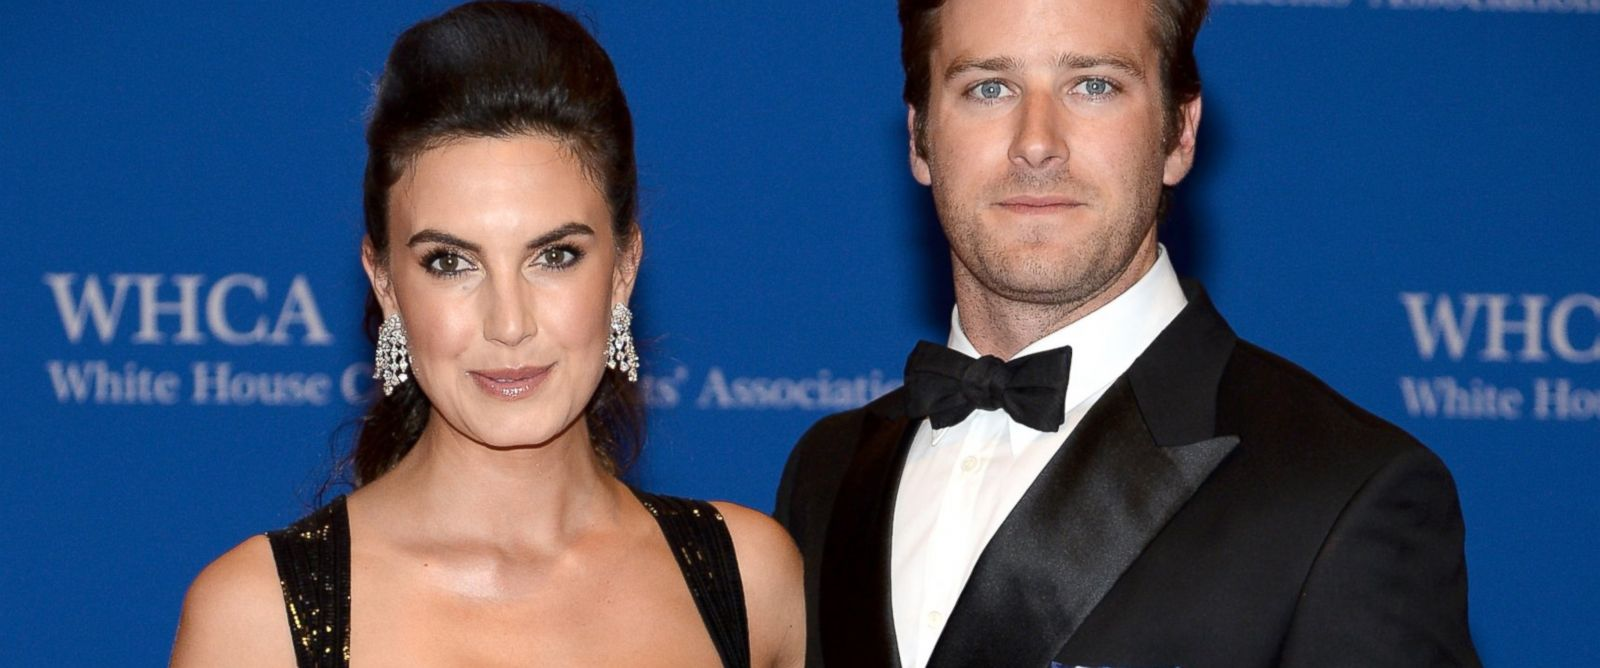 PHOTO: Elizabeth Chambers and Armie Hammer attend the 100th Annual White House Correspondents Association Dinner at the Washington Hilton, May 3, 2014 in Washington.